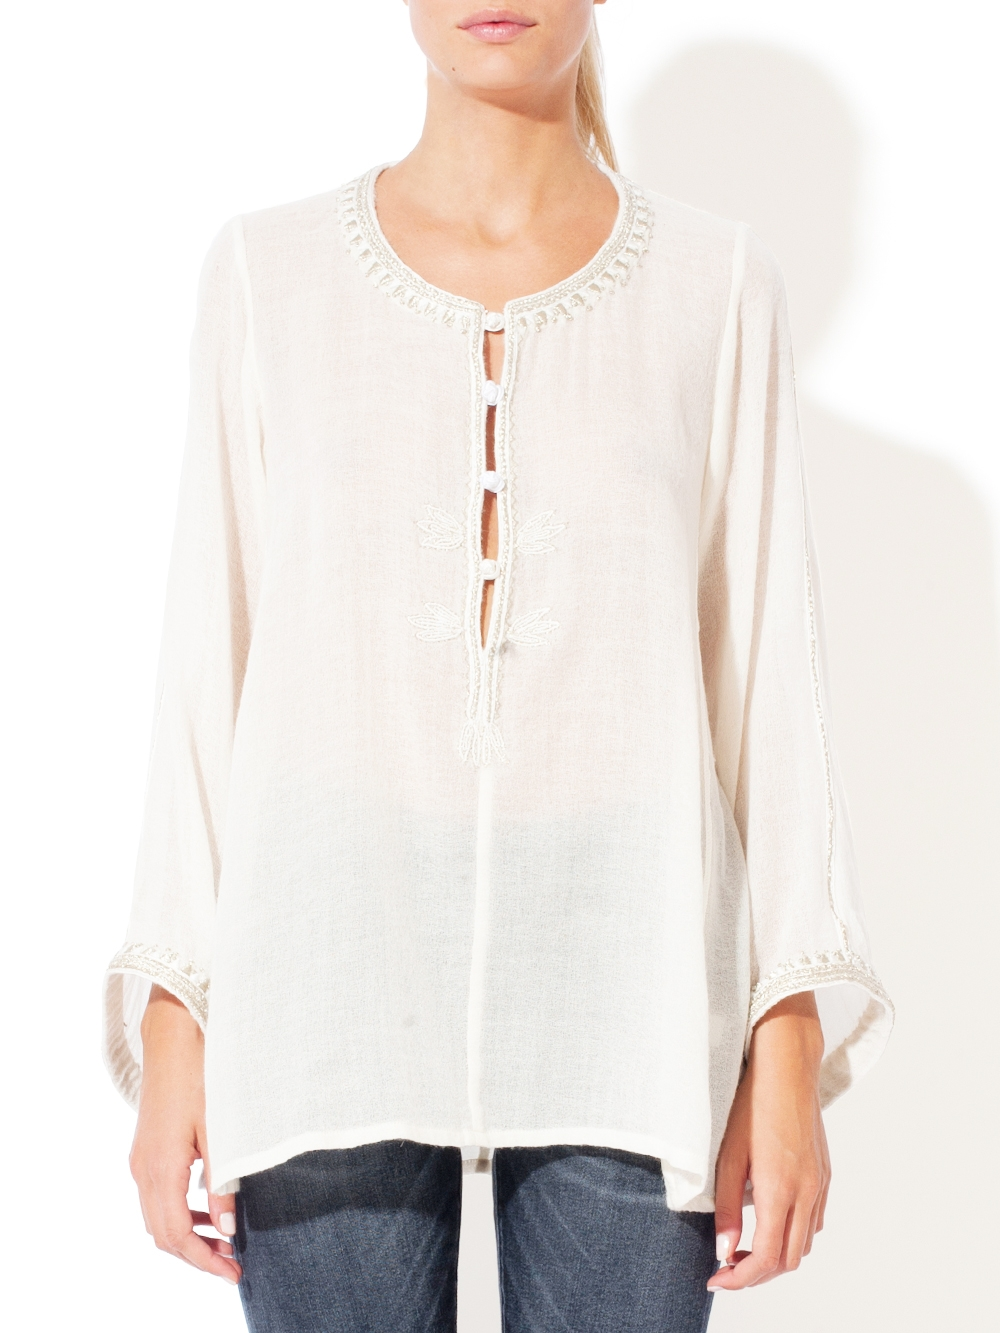 OPULENCE EMBROIDERED SHIRT